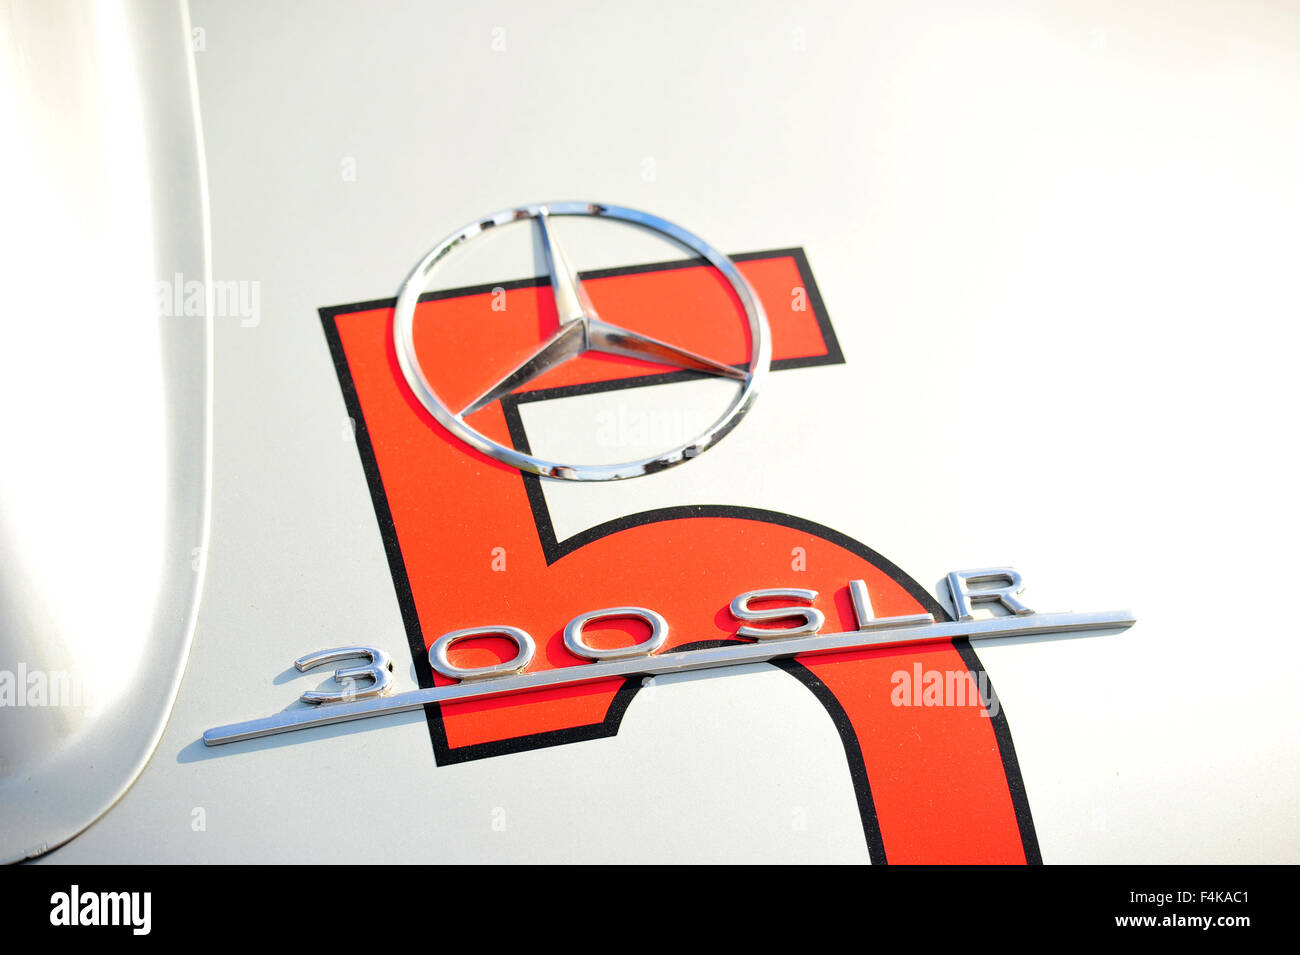 The Mercedes badge on a Mercedes 300 SLR at the Goodwood Festival of Speed in the UK. - Stock Image